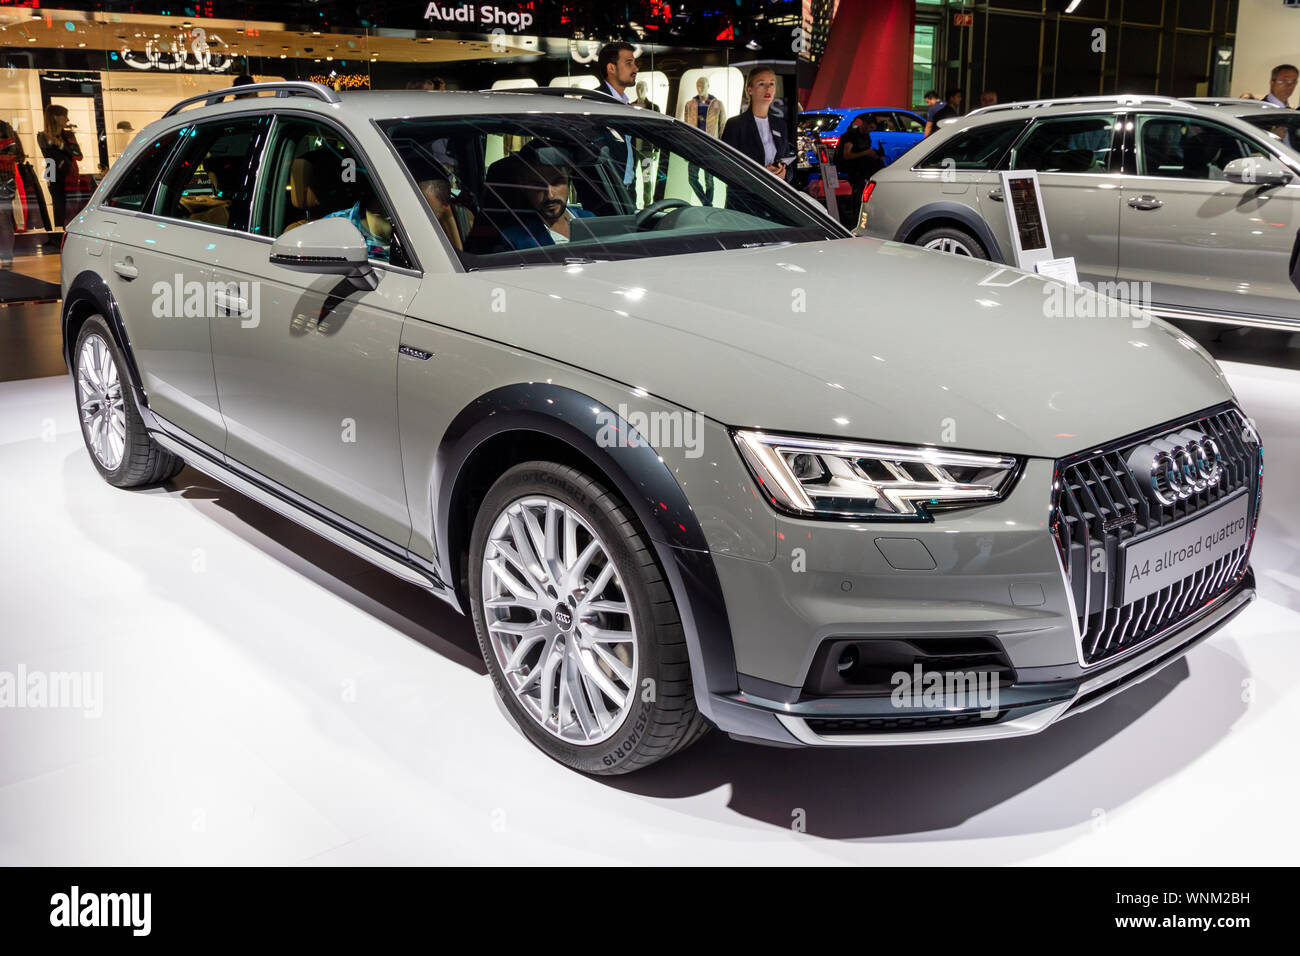 Kelebihan A4 Allroad Quattro Review